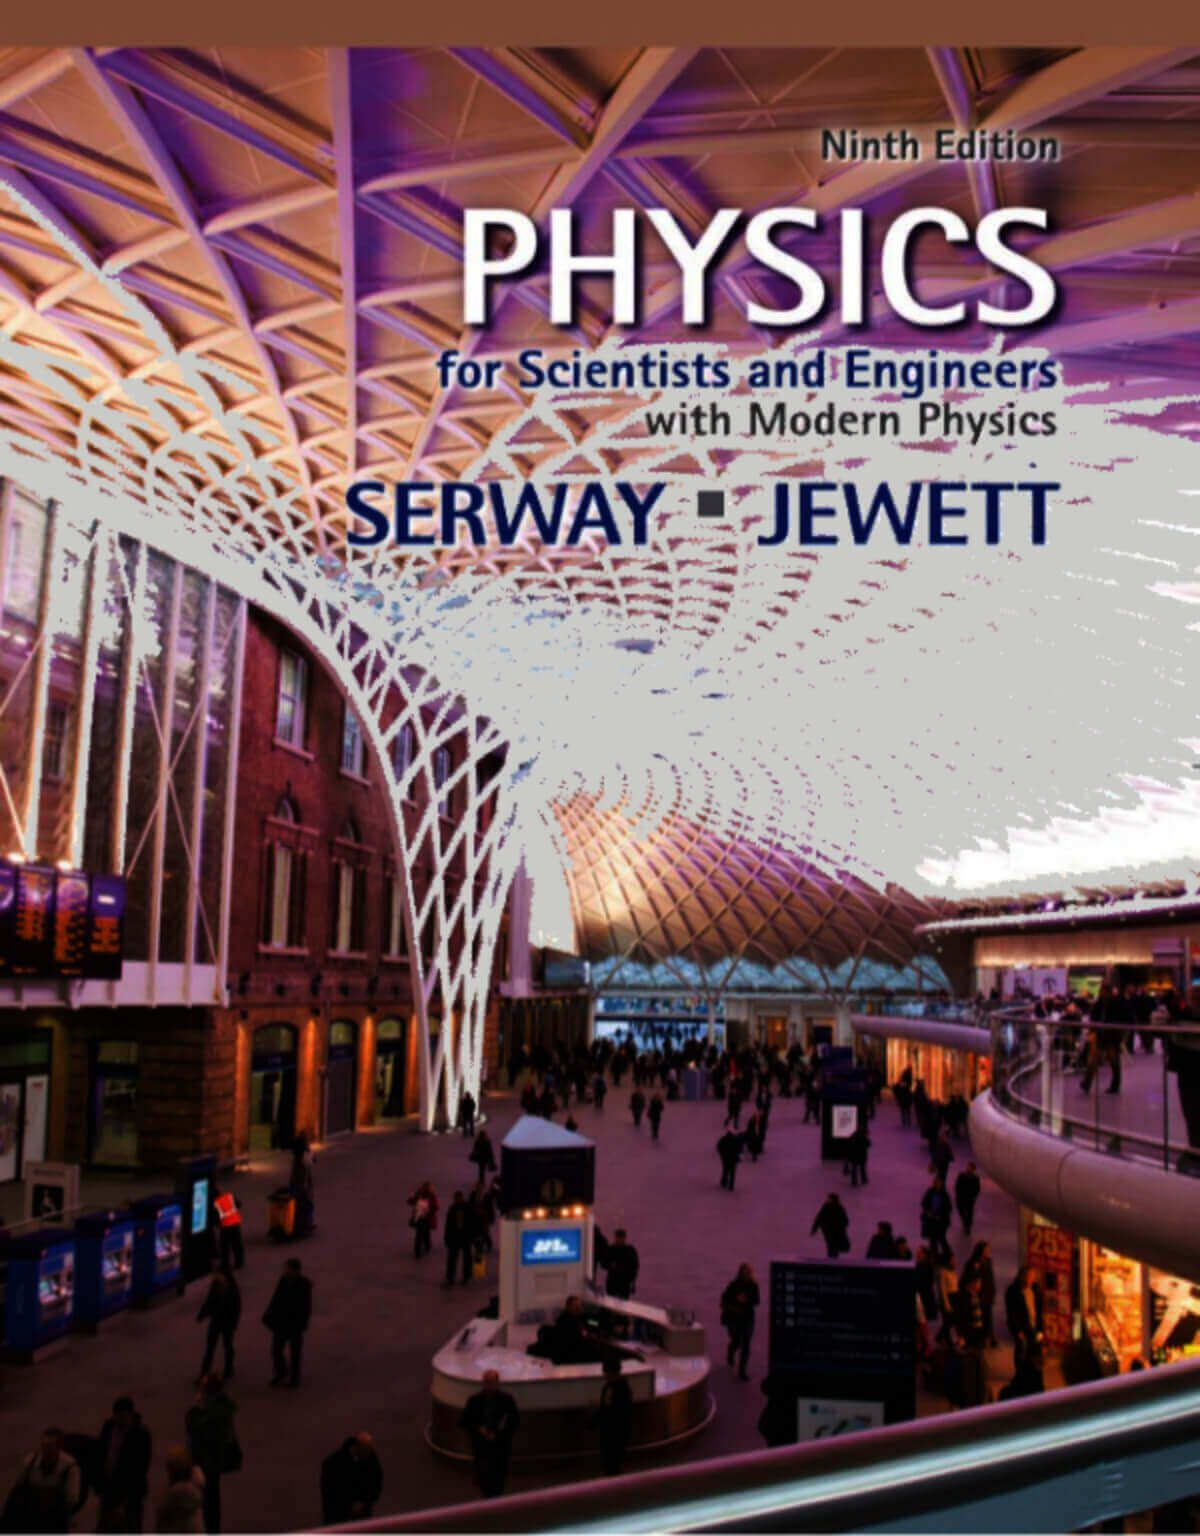 Download physics for scientists and engineers extended 9th edition solution manual pdf